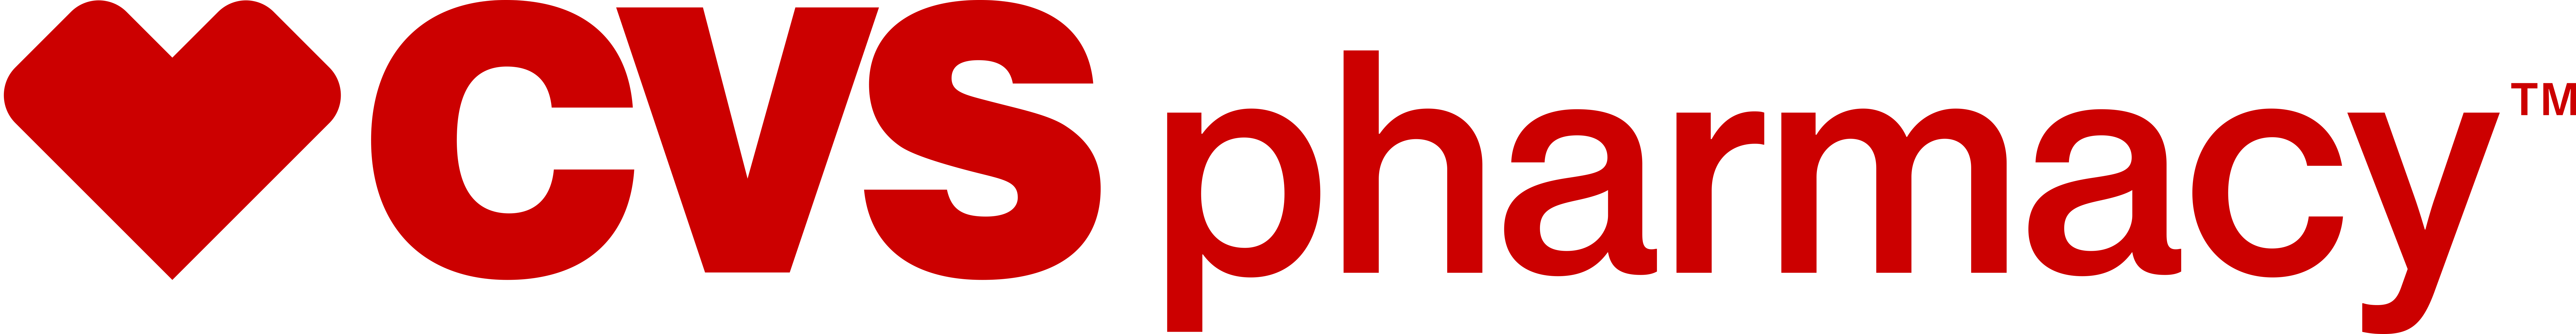 cvs-pharmacy-logo.png